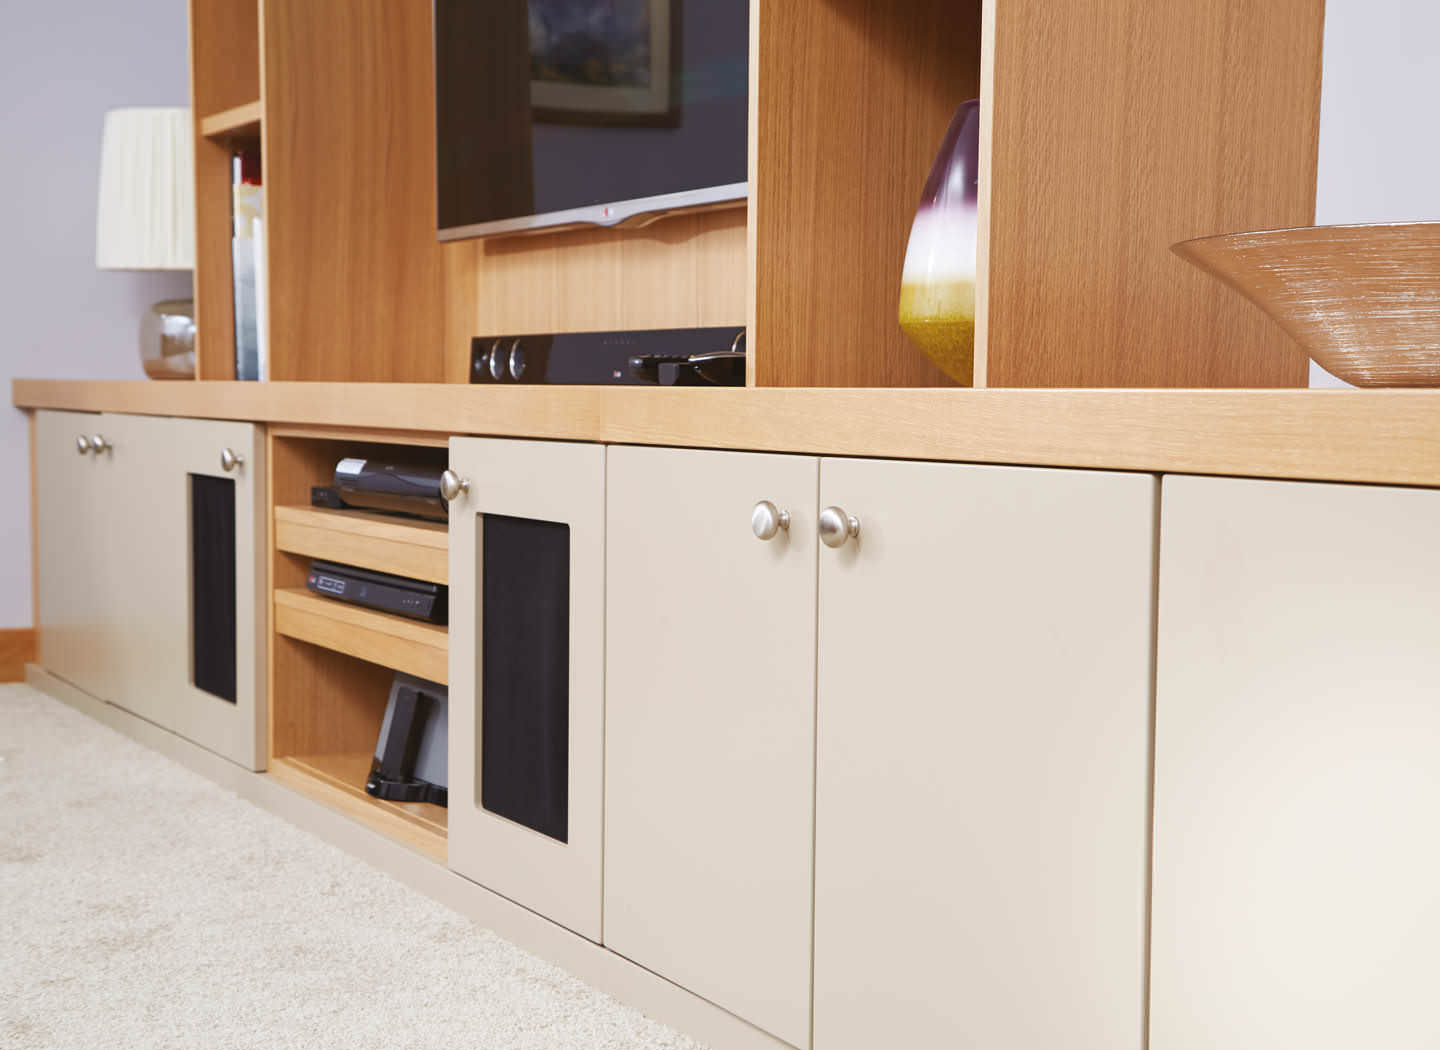 Case study showing wall to wall cabinets in lounge